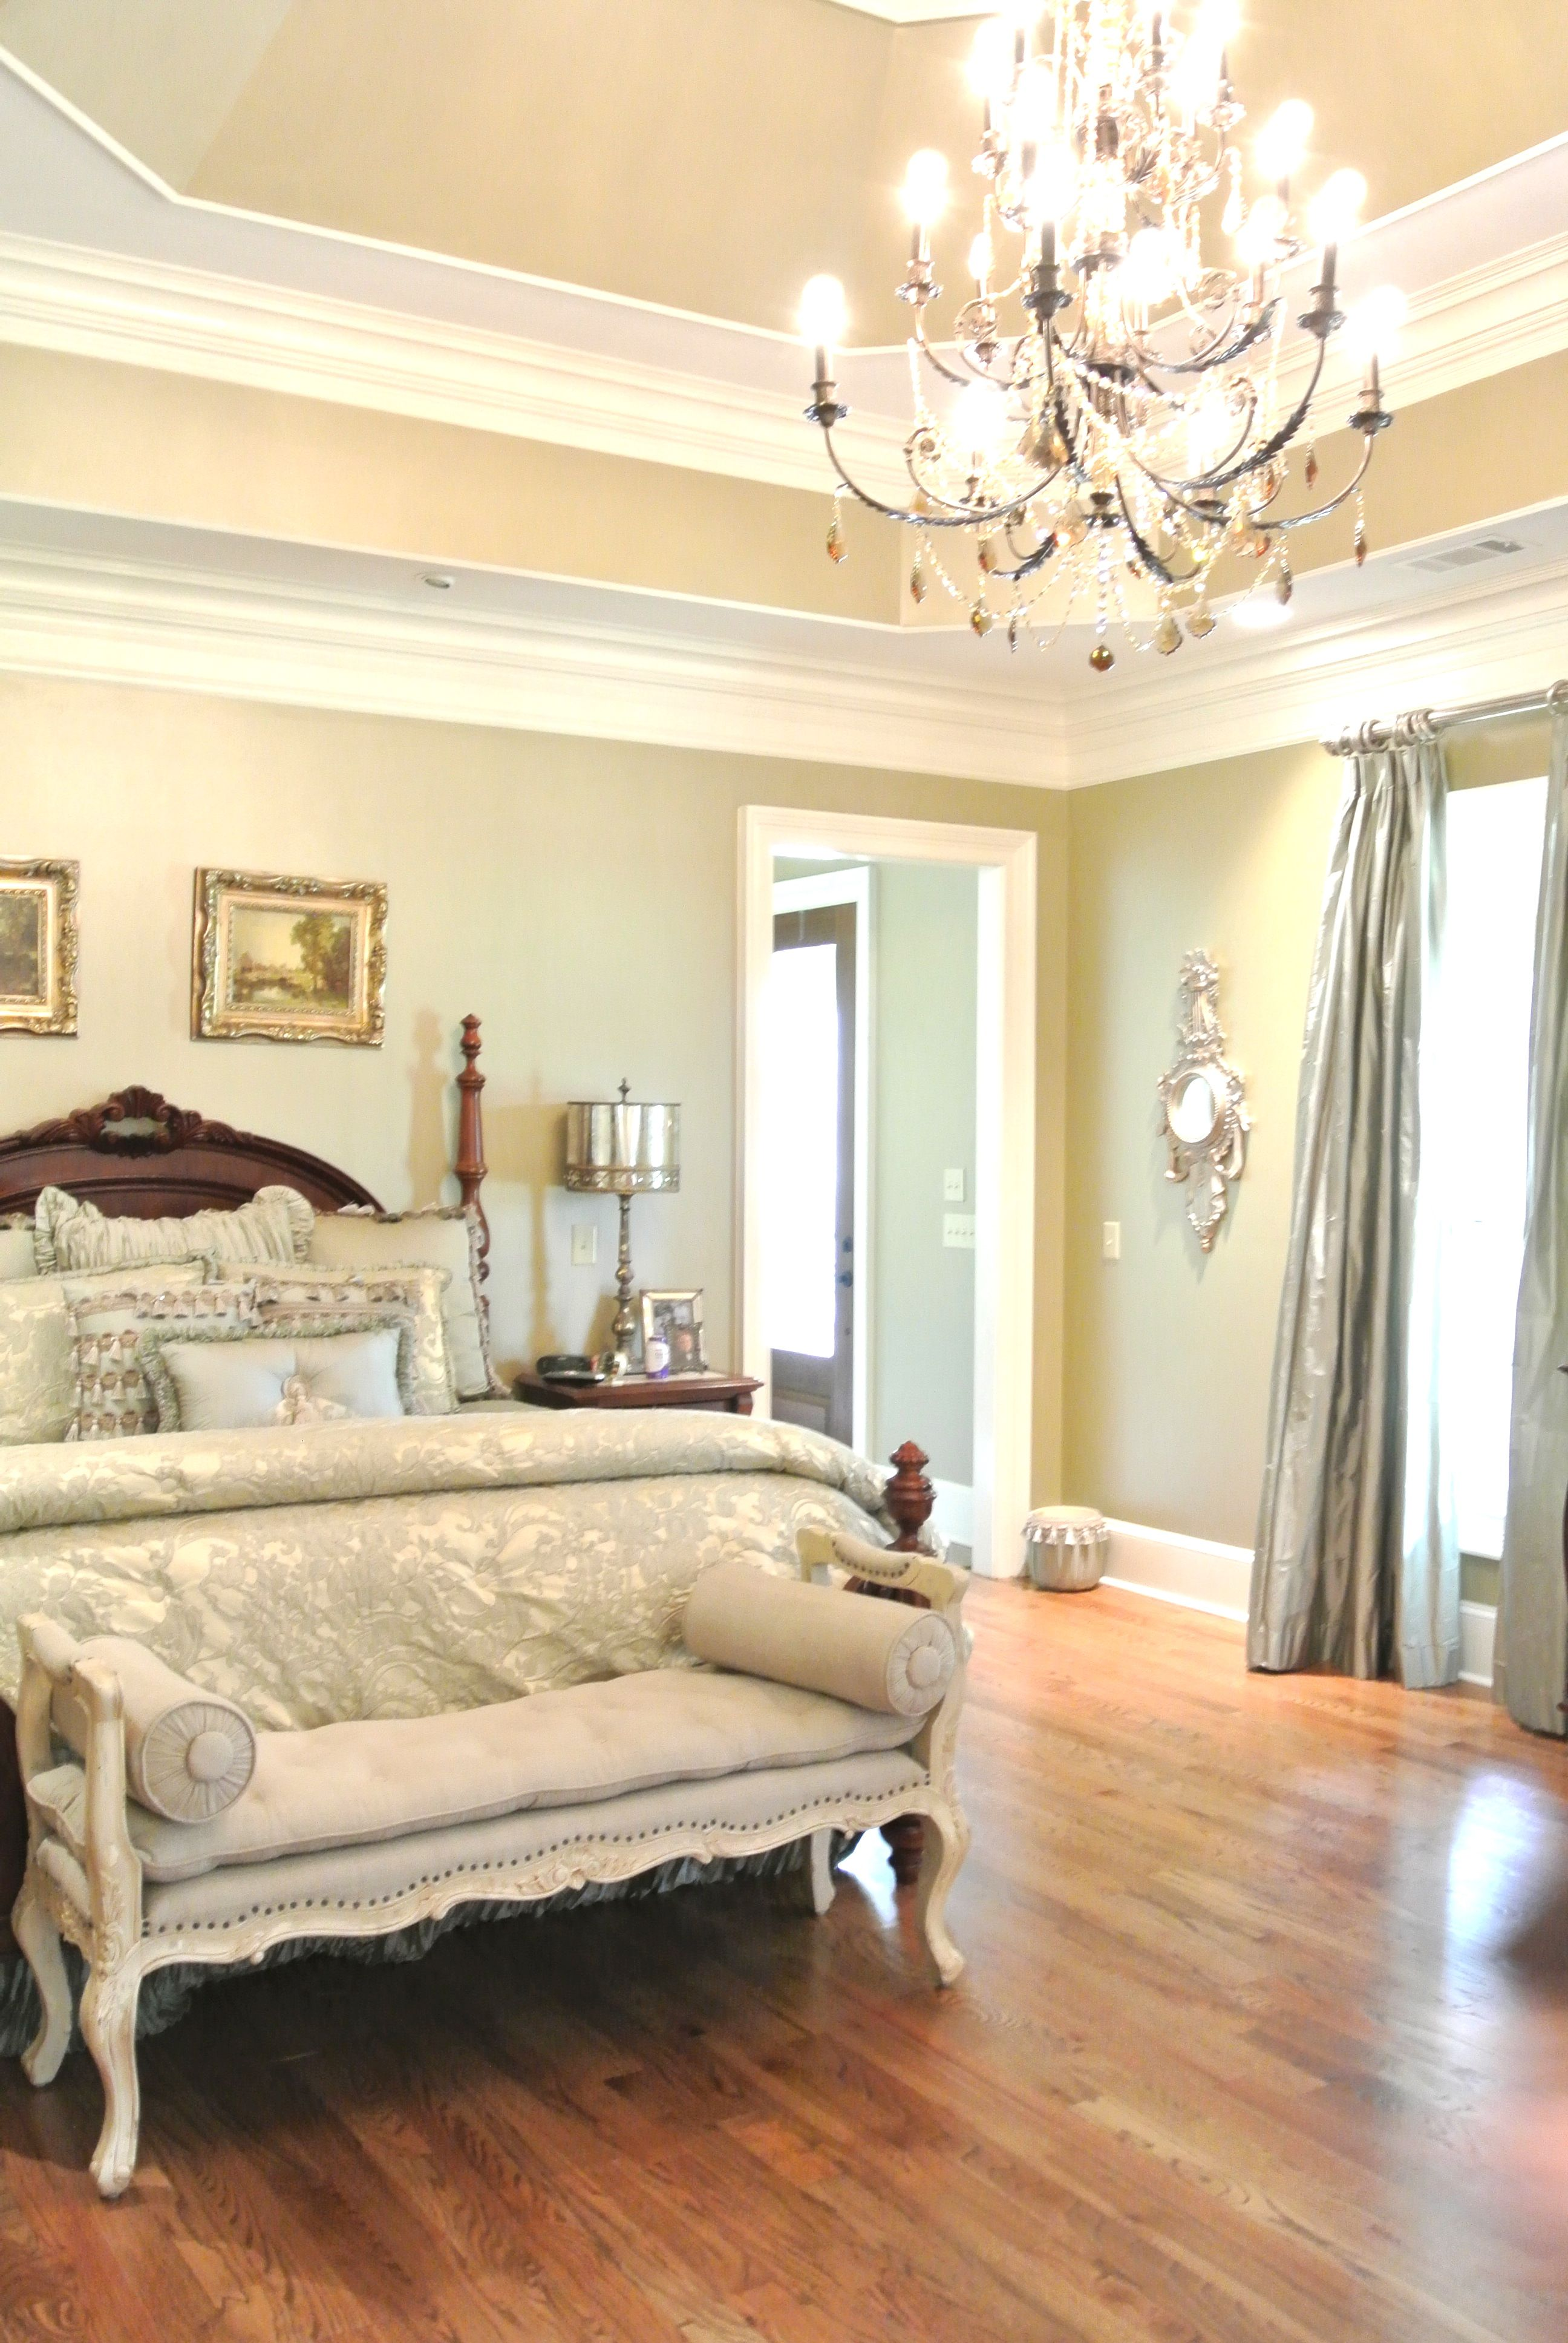 Best Master Bedroom With Tray Ceiling Home Decor Pinterest 640 x 480